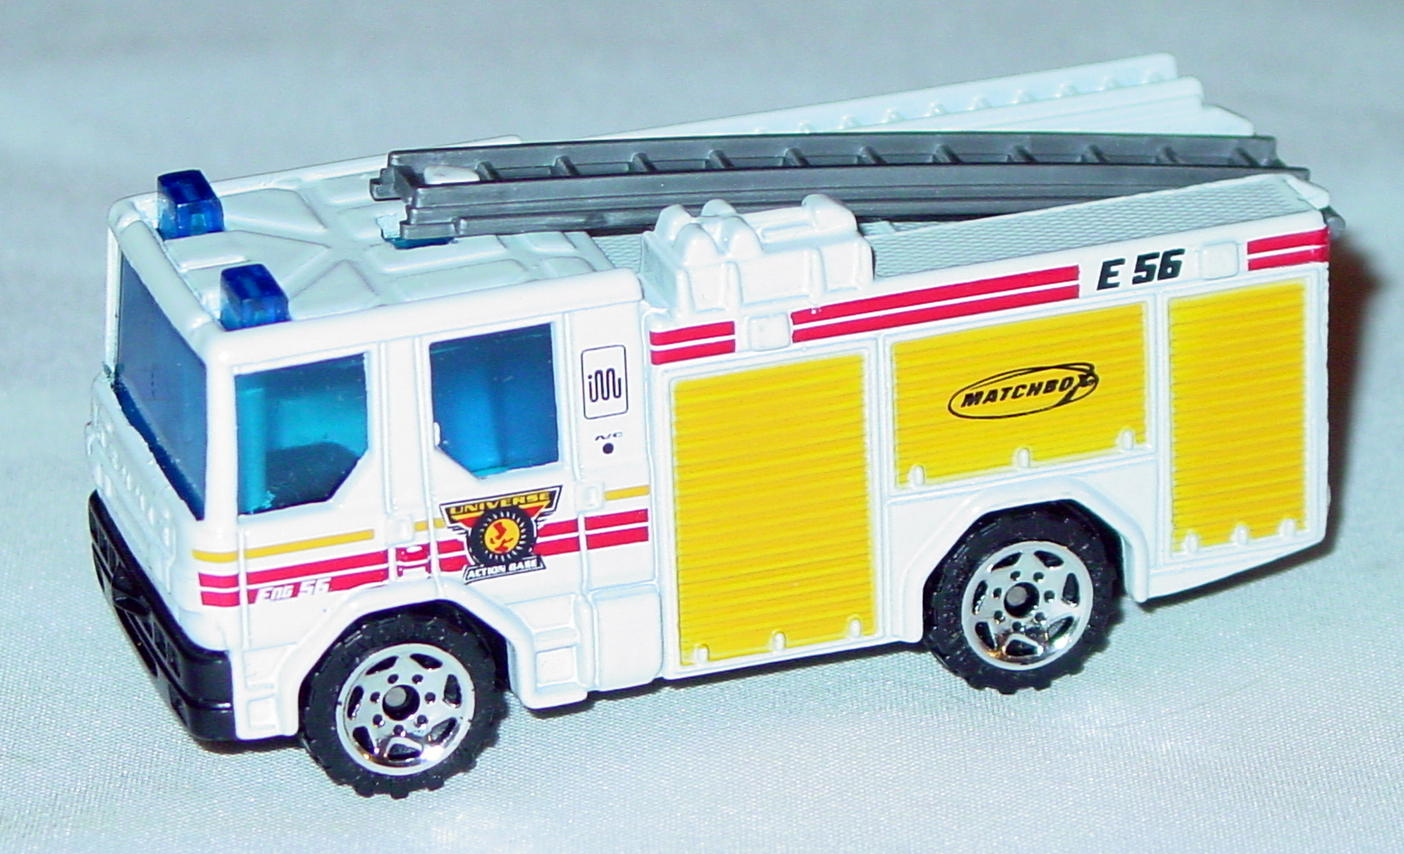 Offshore SuperFast 68 L 6 - 2001 30 Dennis Sabre Fire White Universe Action Base